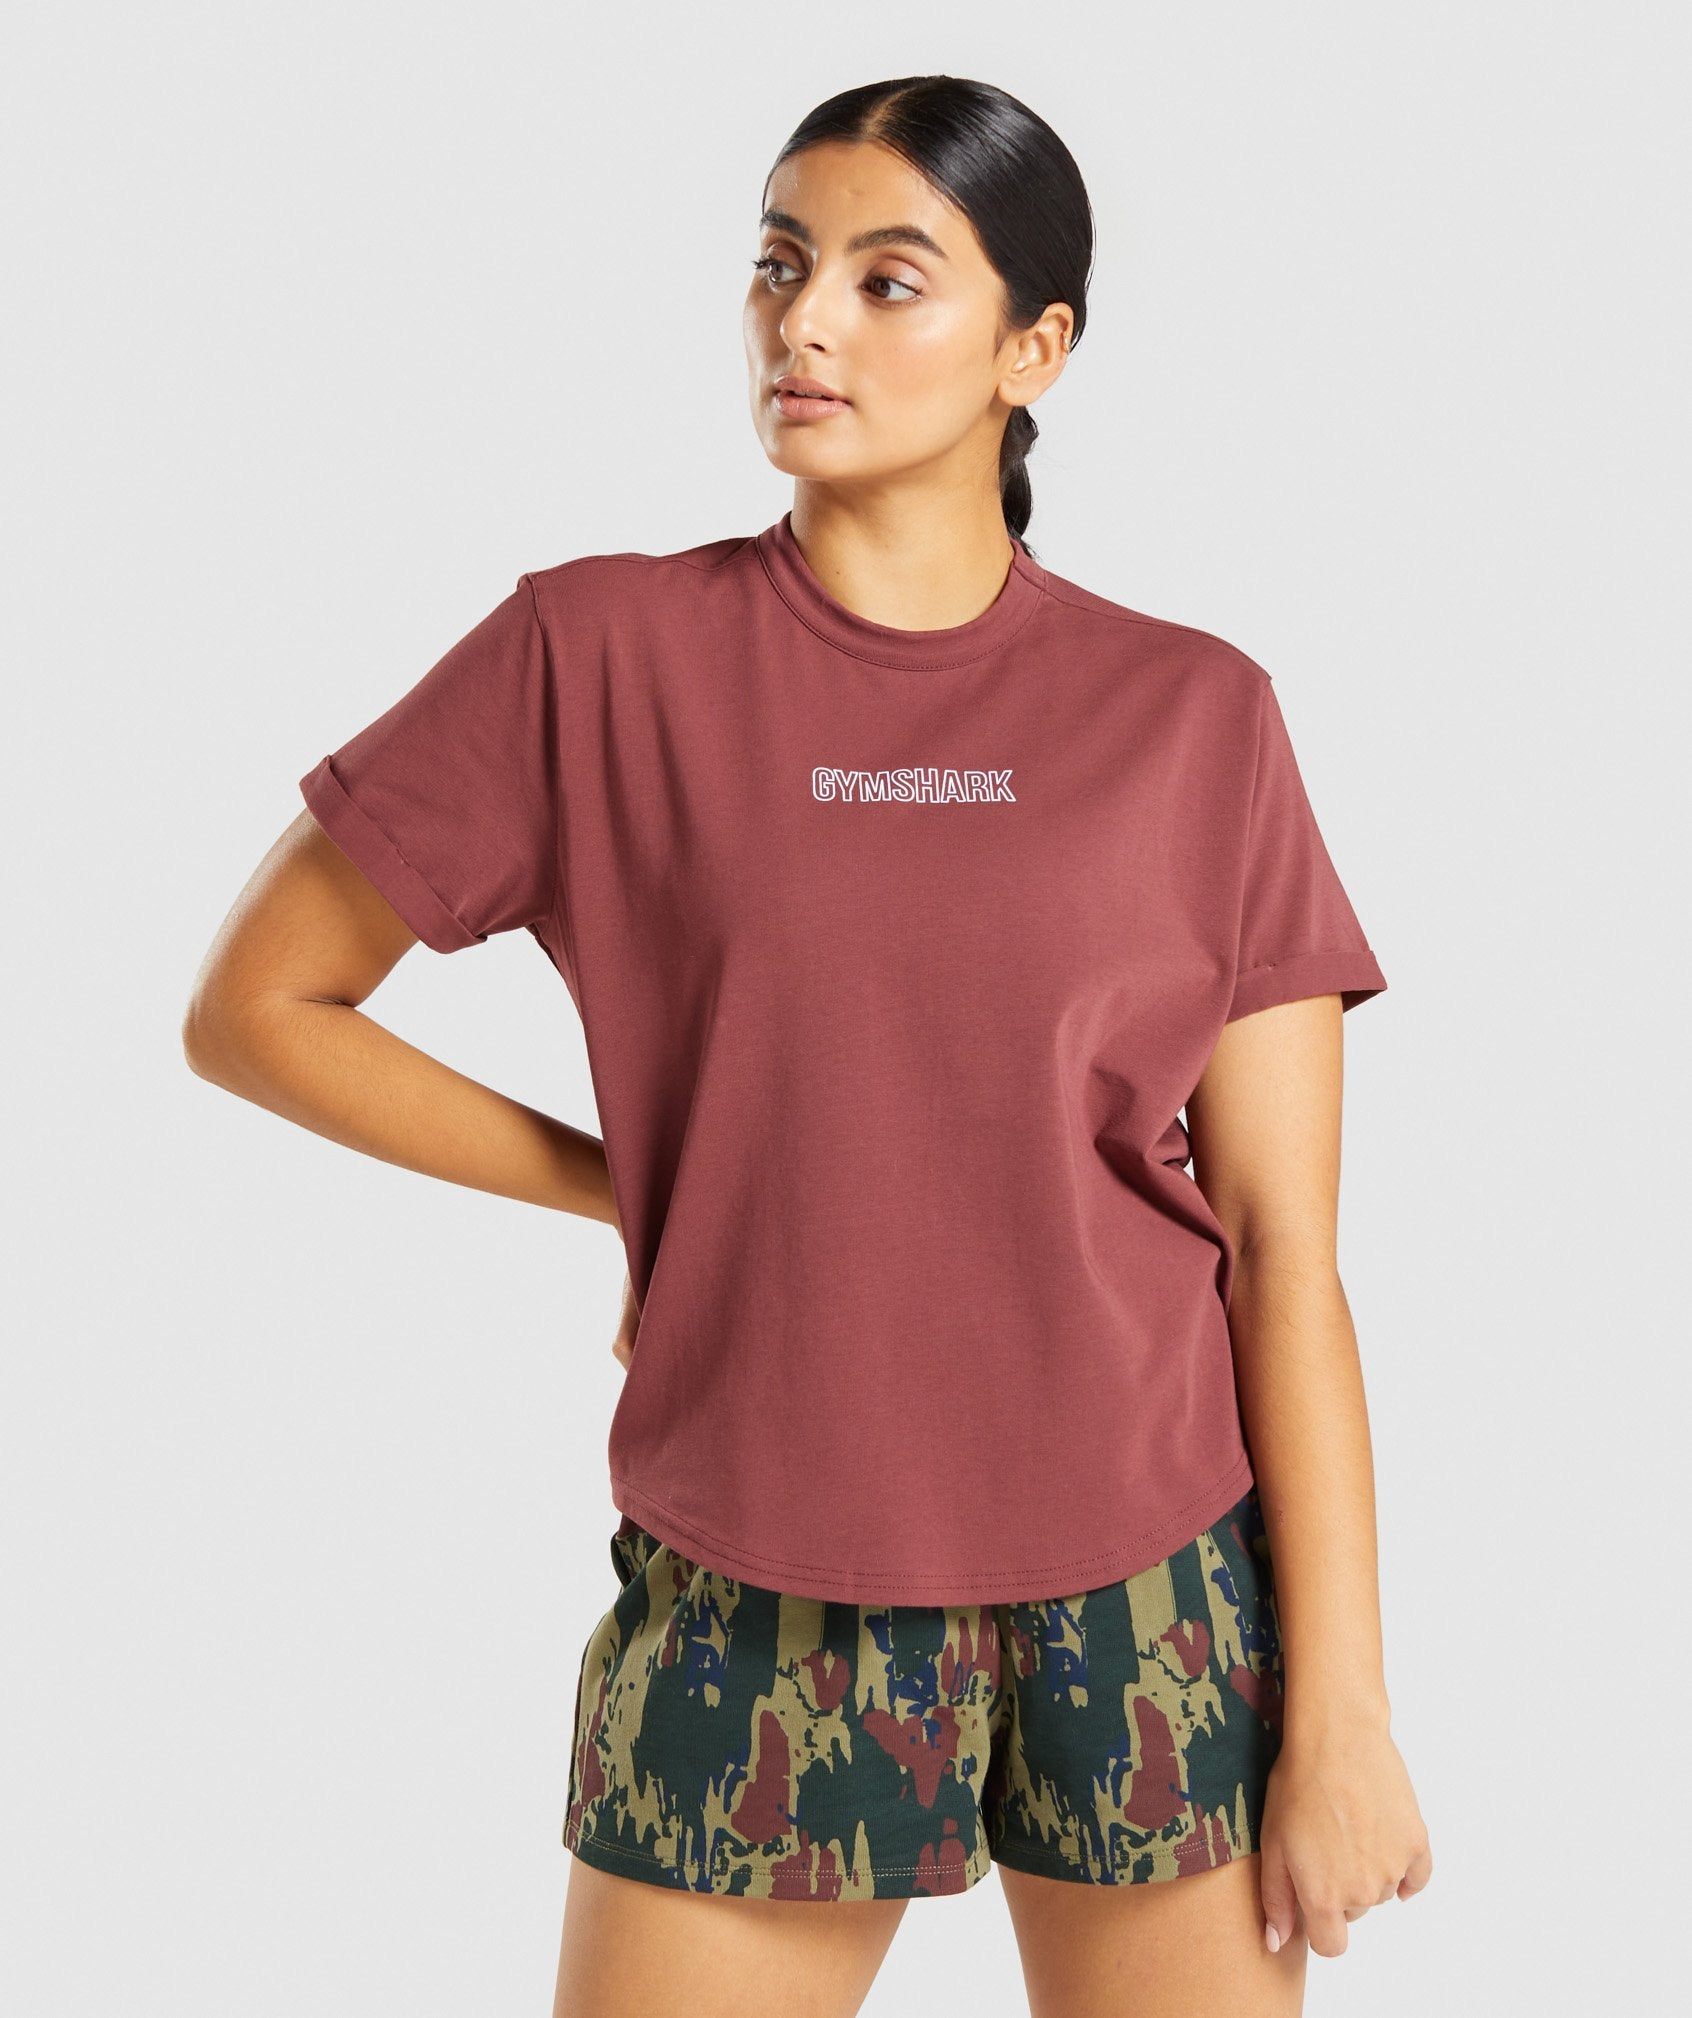 Classier: Buy Gymshark Distort Graphic T-Shirt - Brown - Gymshark